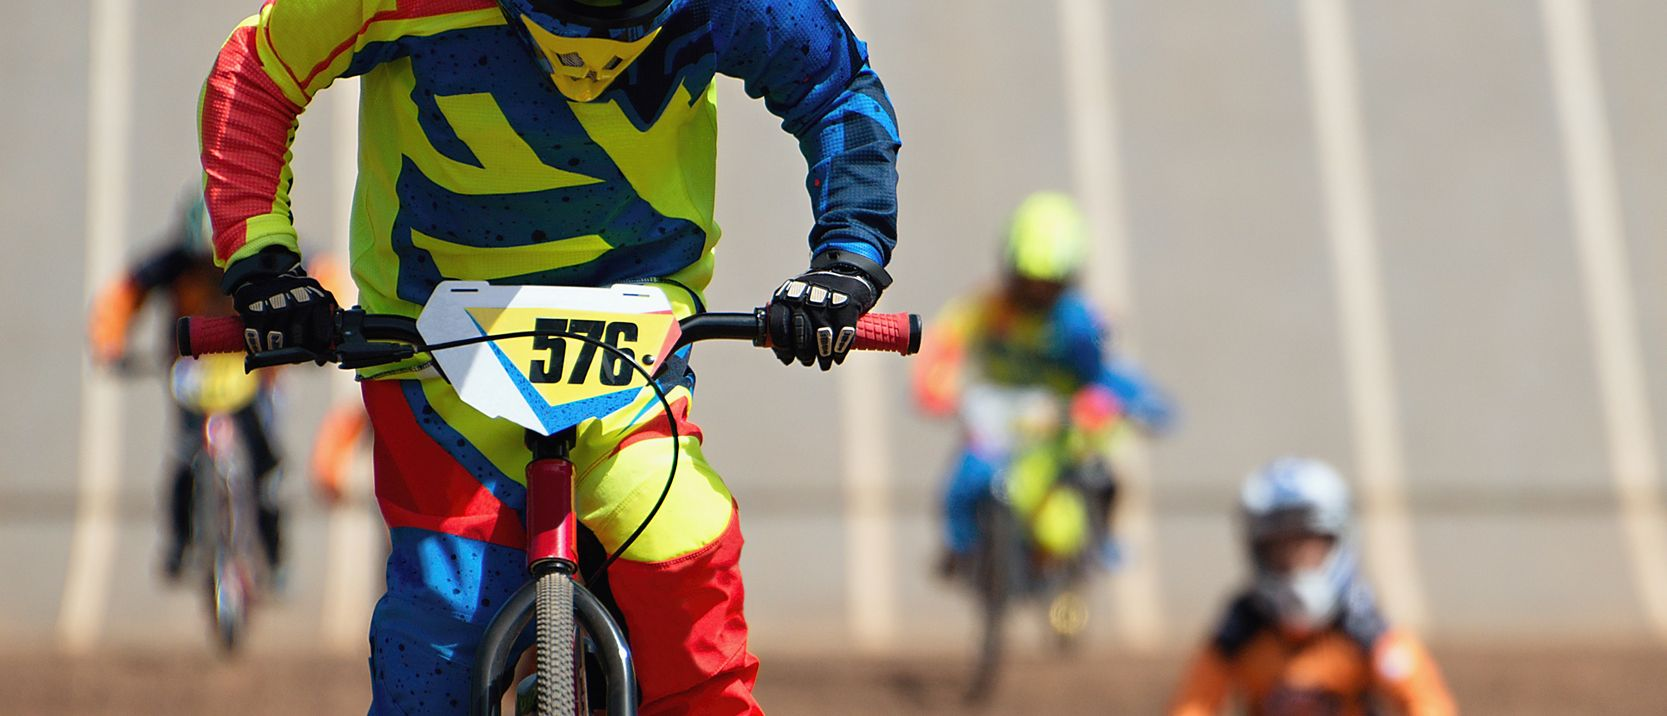 BMX race showing four riders